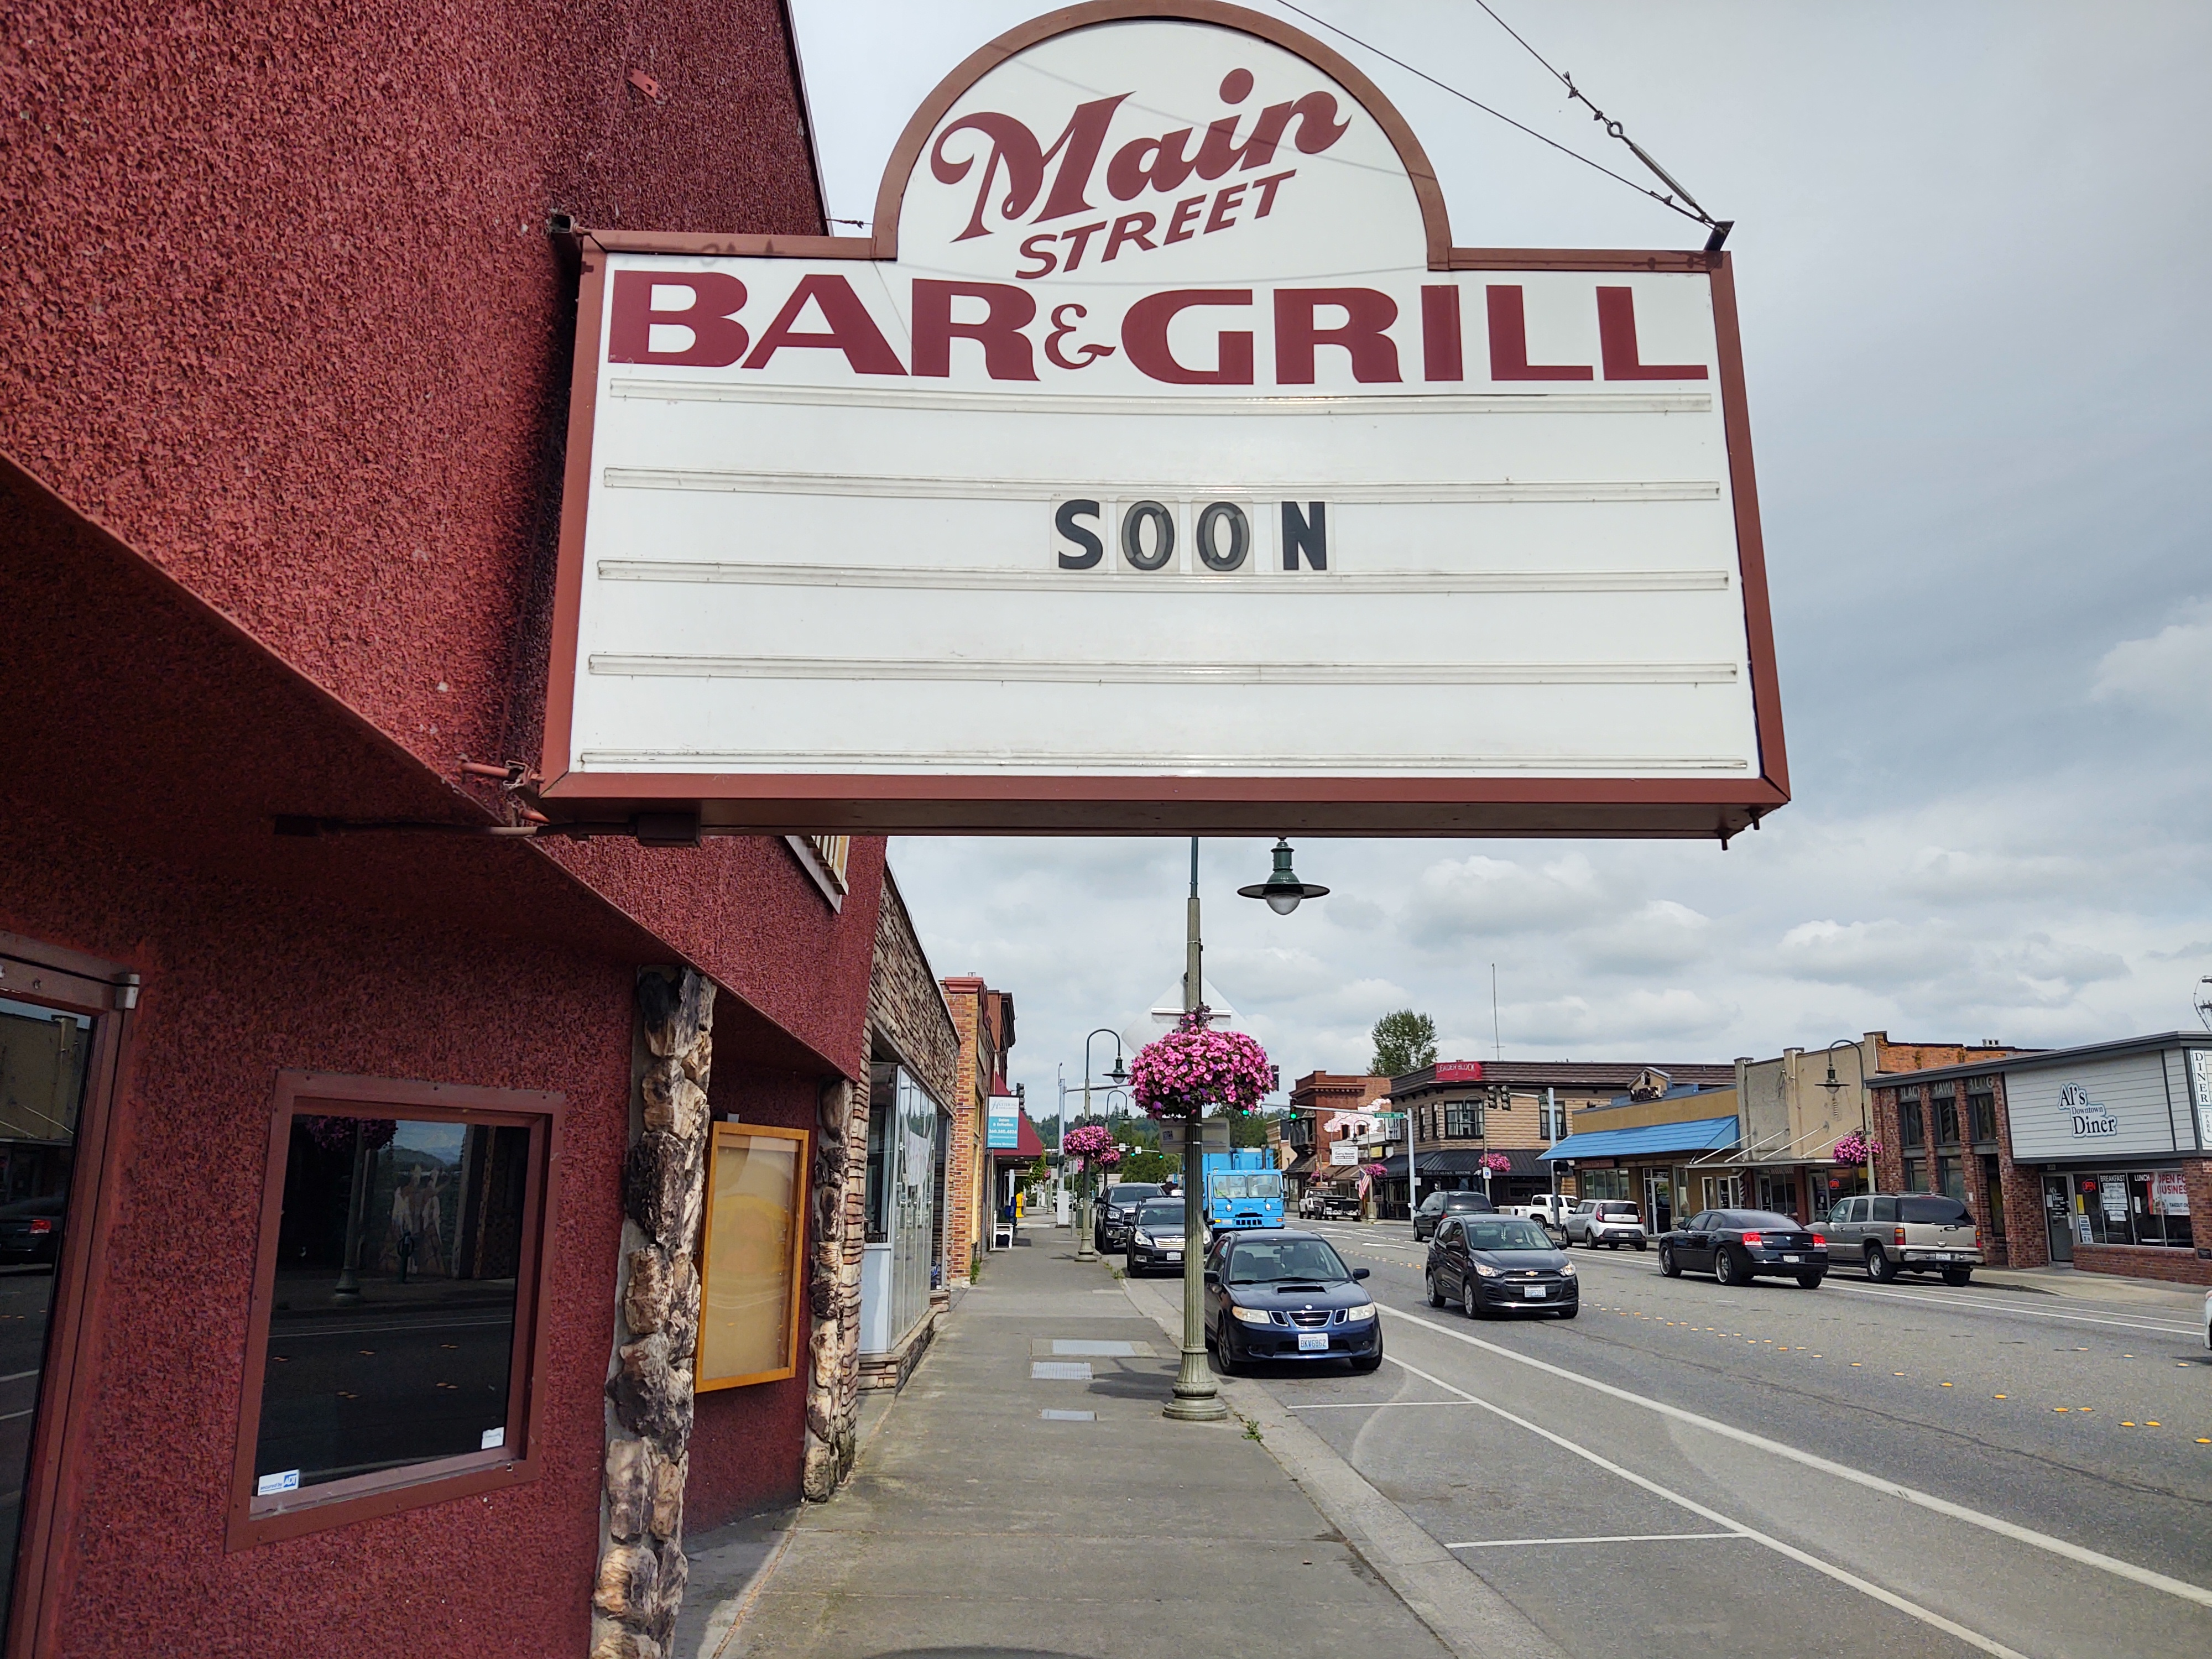 Readerboard on the Main Street Bar & Grill as businesses await the opportunity to legally reopen (June 5, 2020). Photo: My Ferndale News